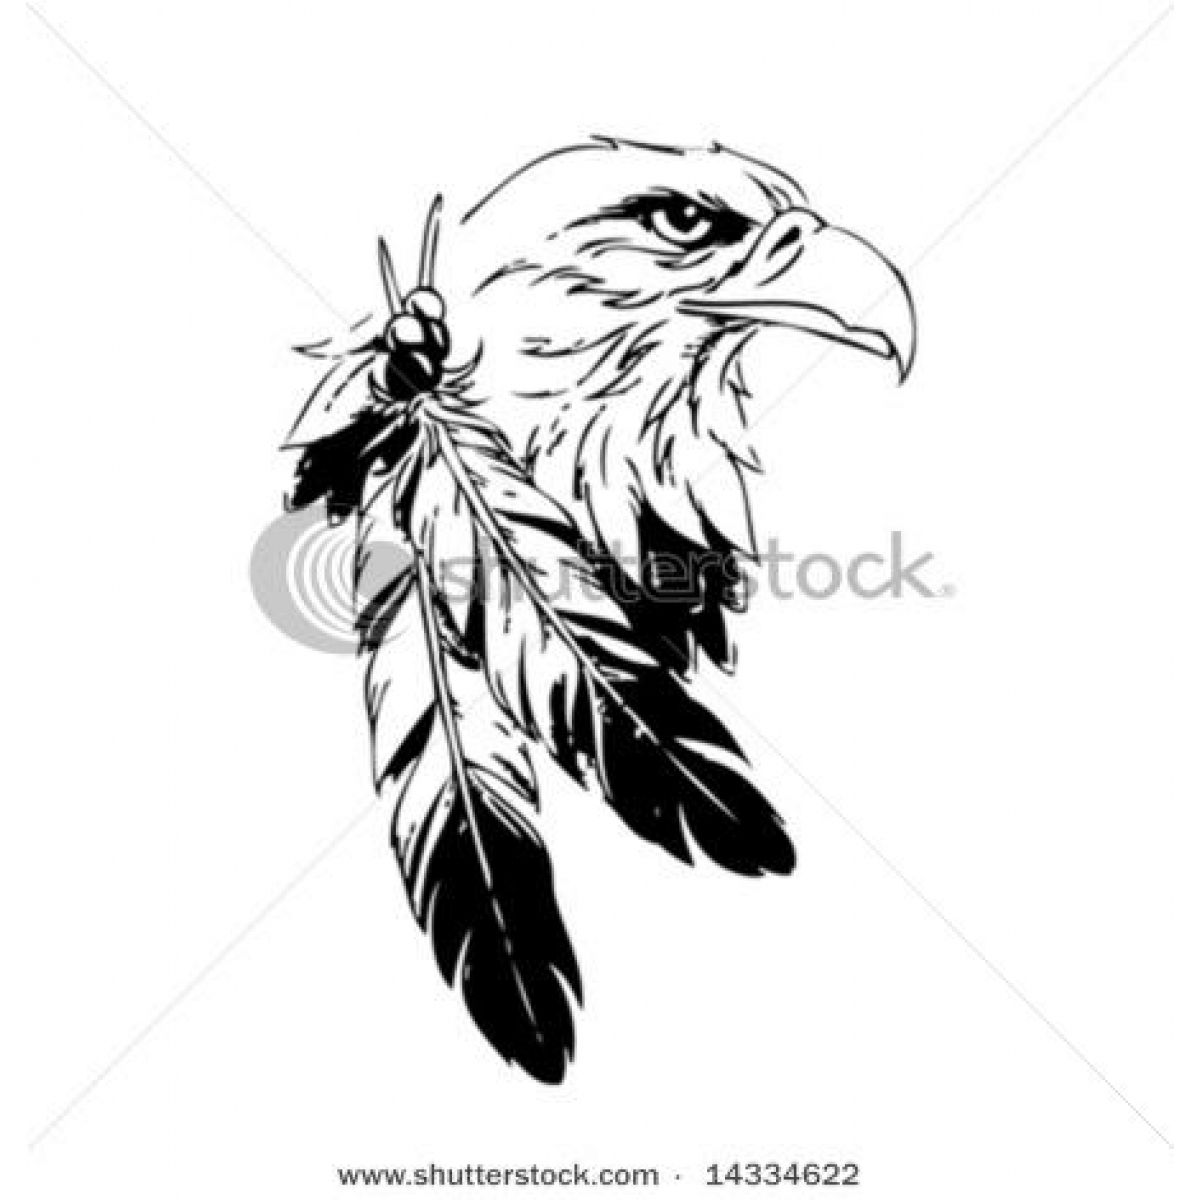 1200x1200 Native American Eagle Feather Drawings Feathers On Animal Horn